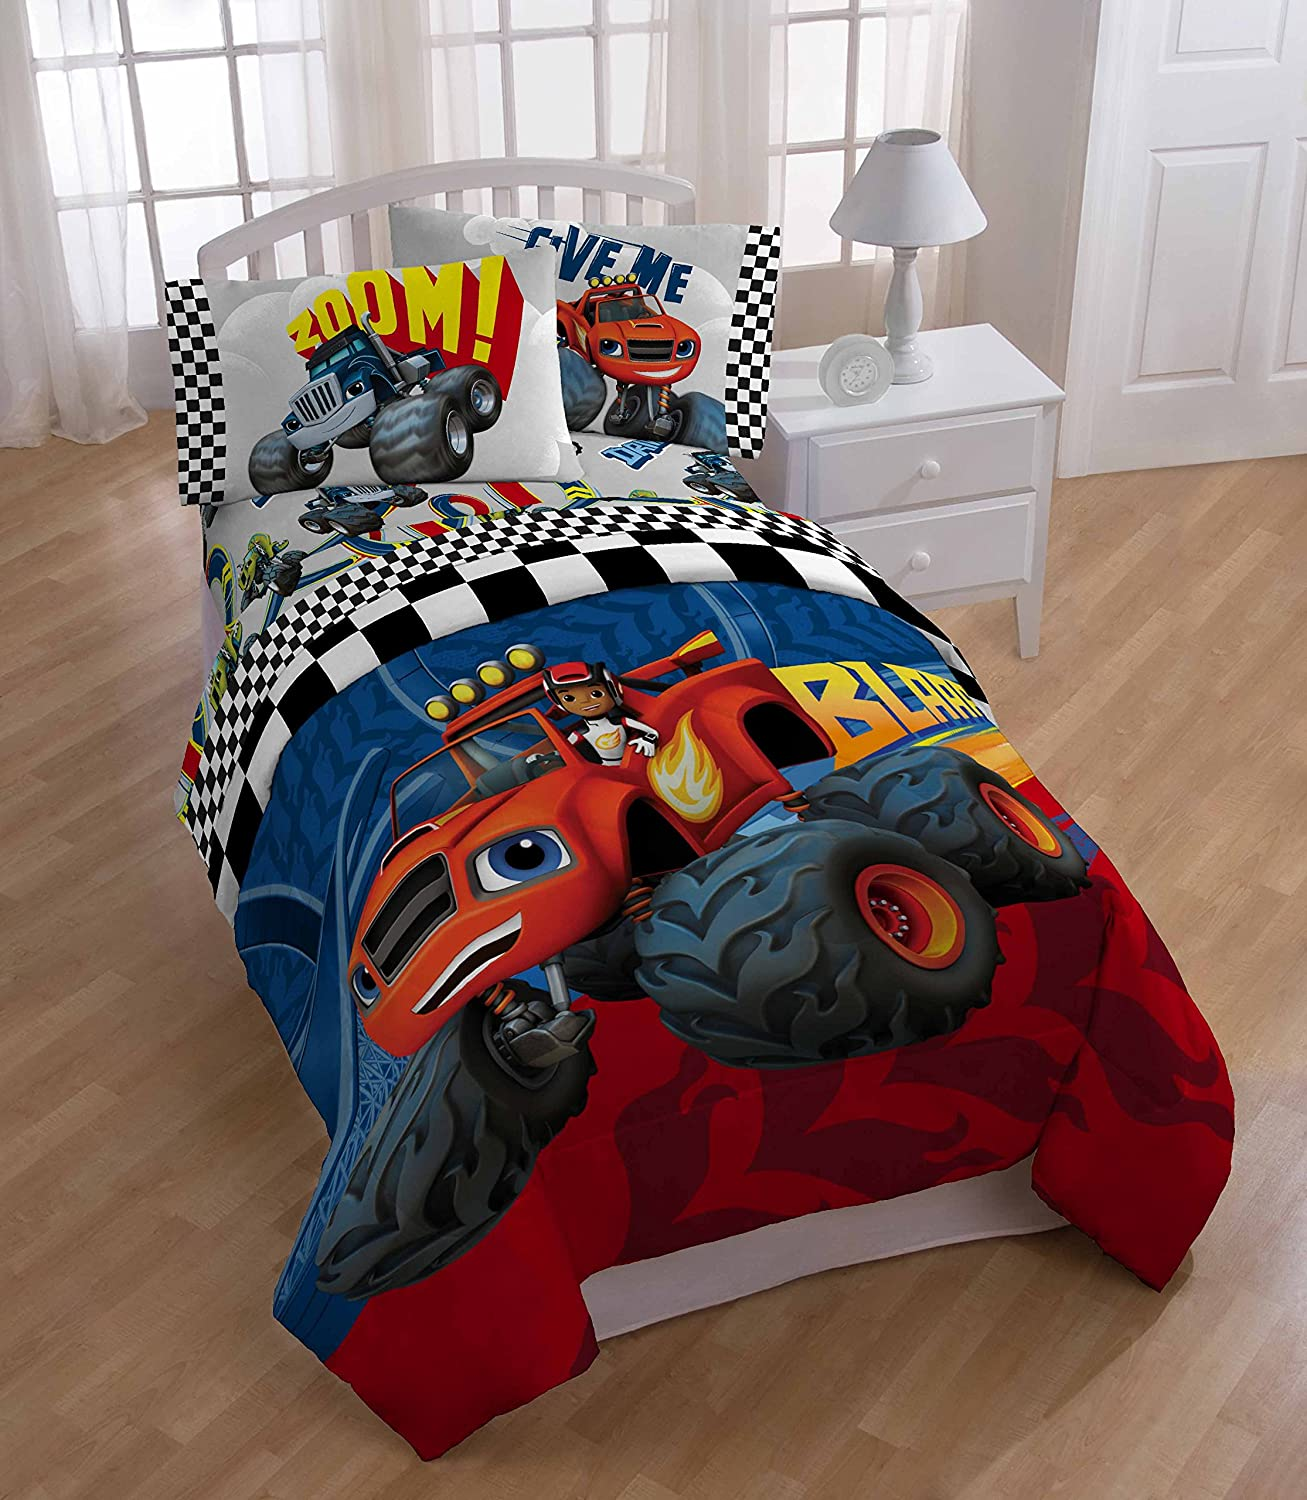 rug bedroom full inspired set large bedrooms size of spiderman and batman ideas accessories fresh